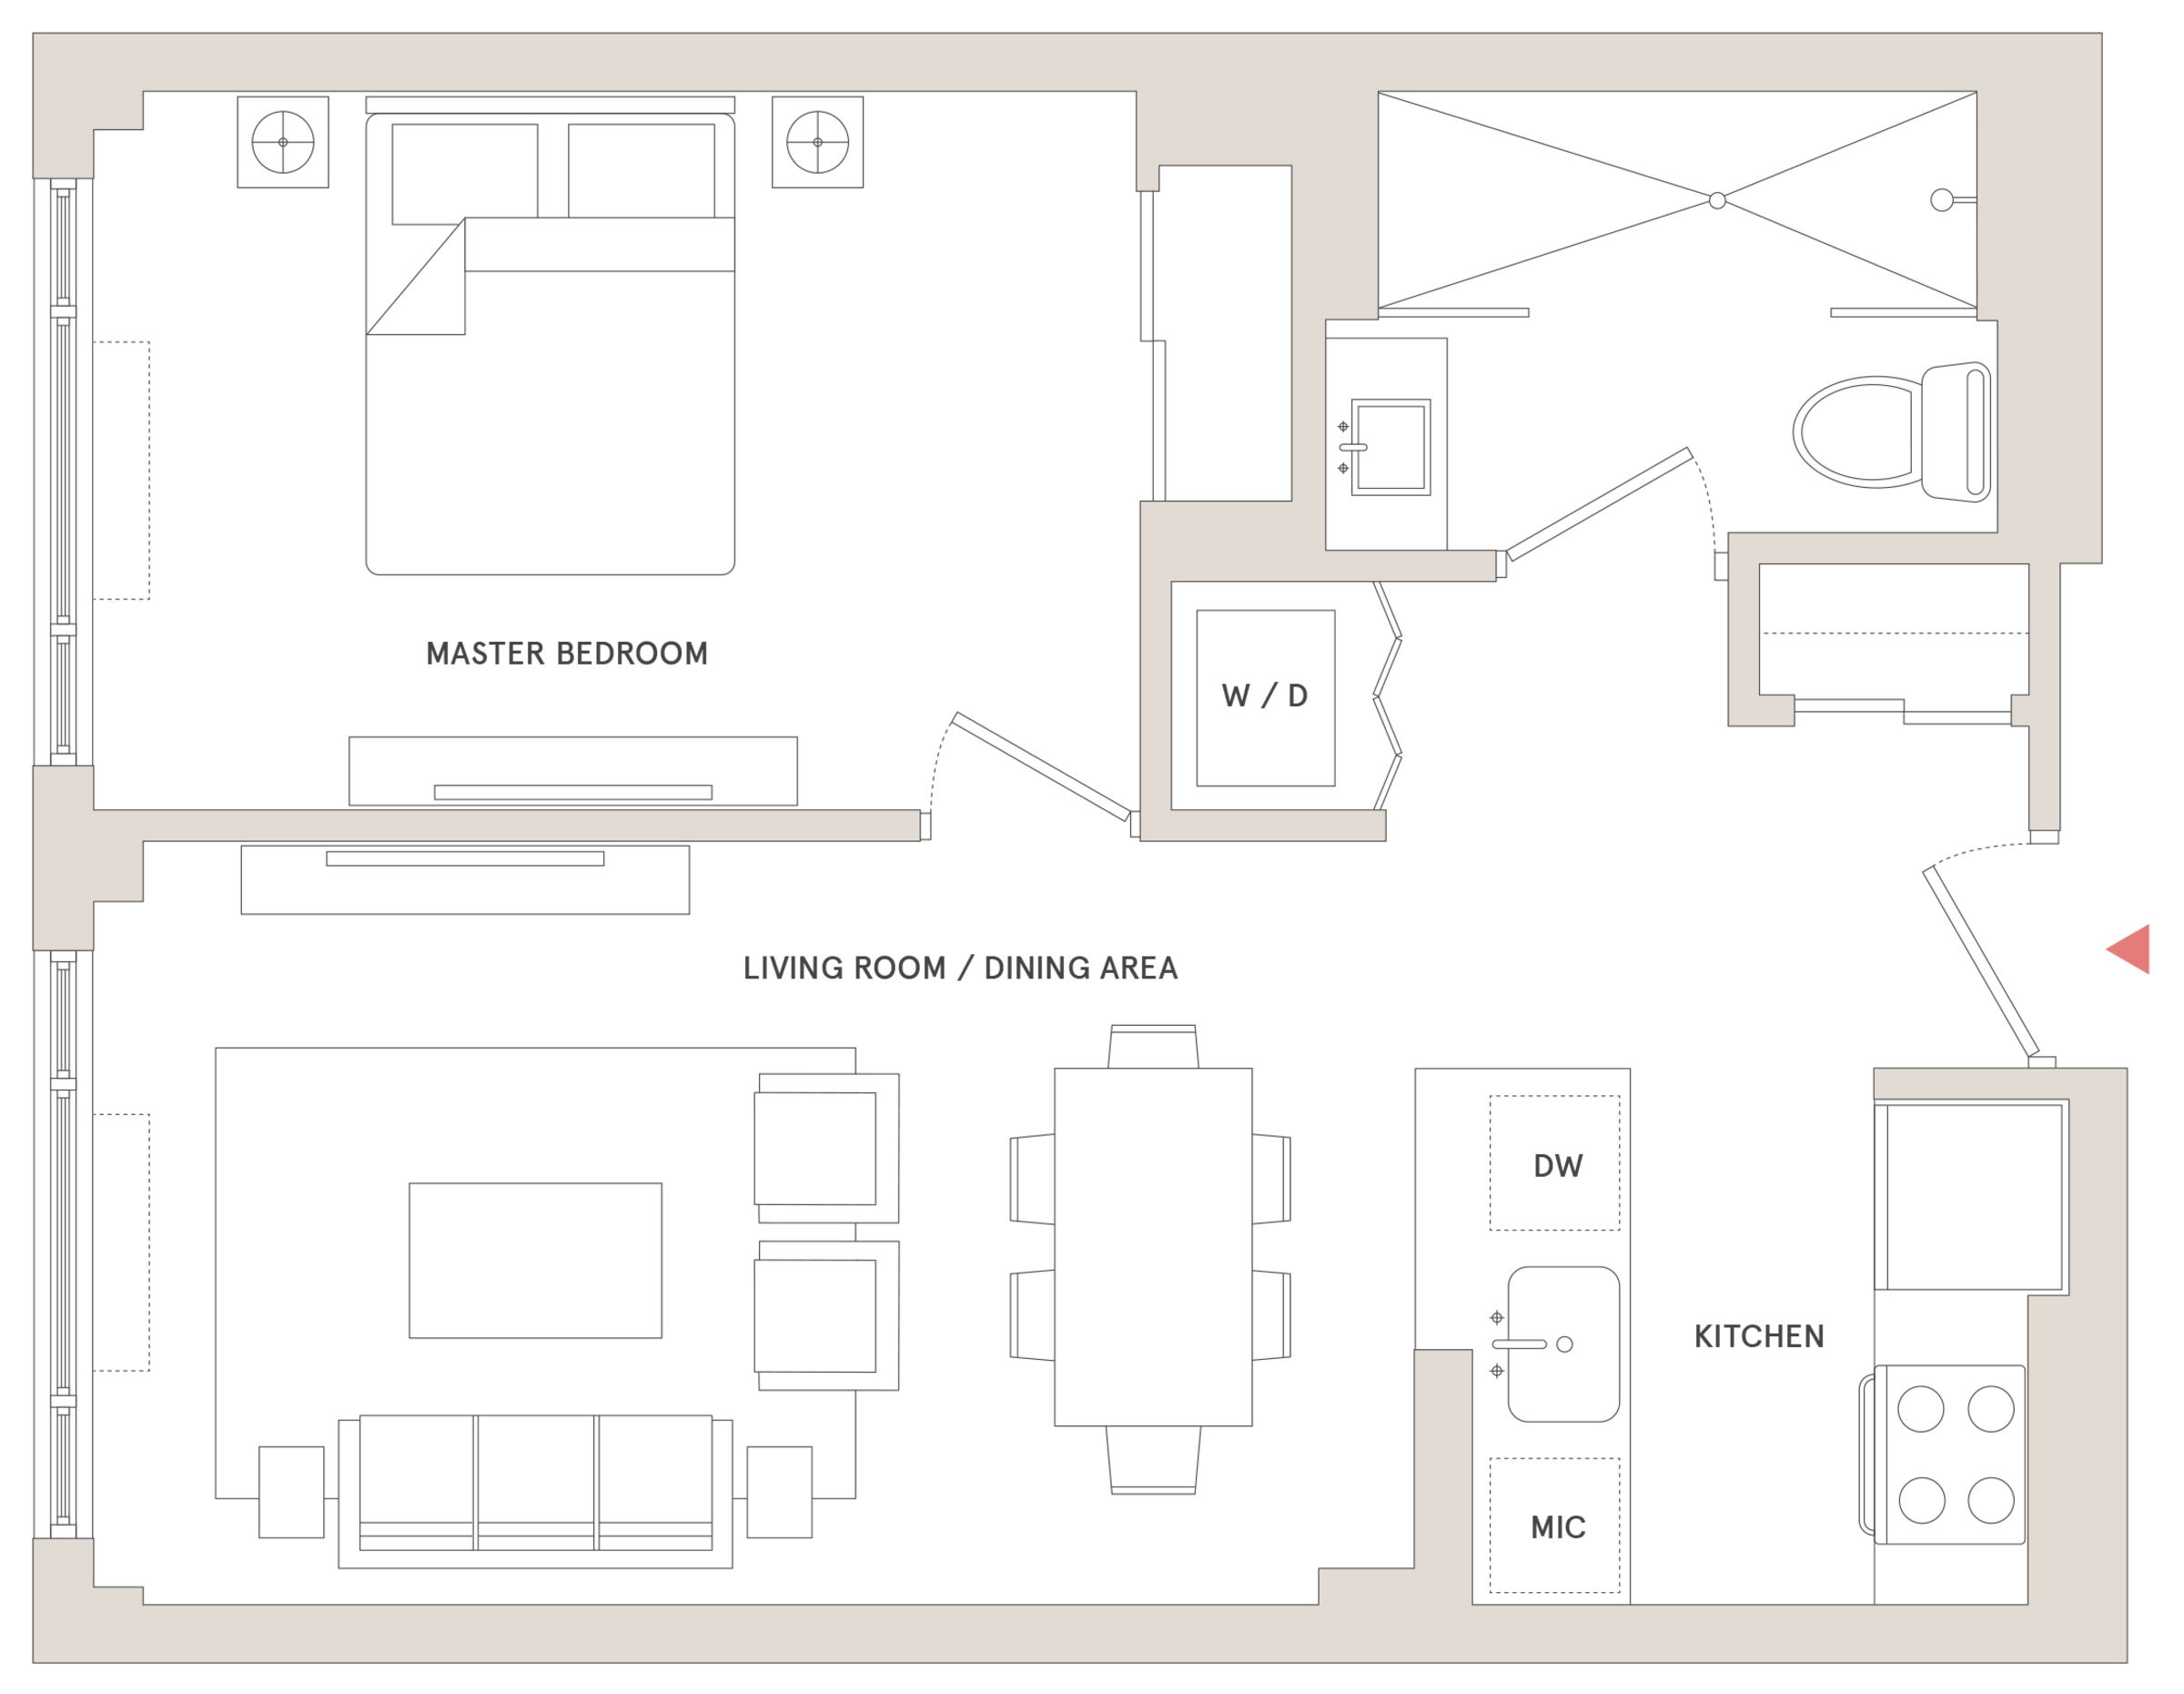 Full screen 181fs floorplans 170922 2e 3 6d